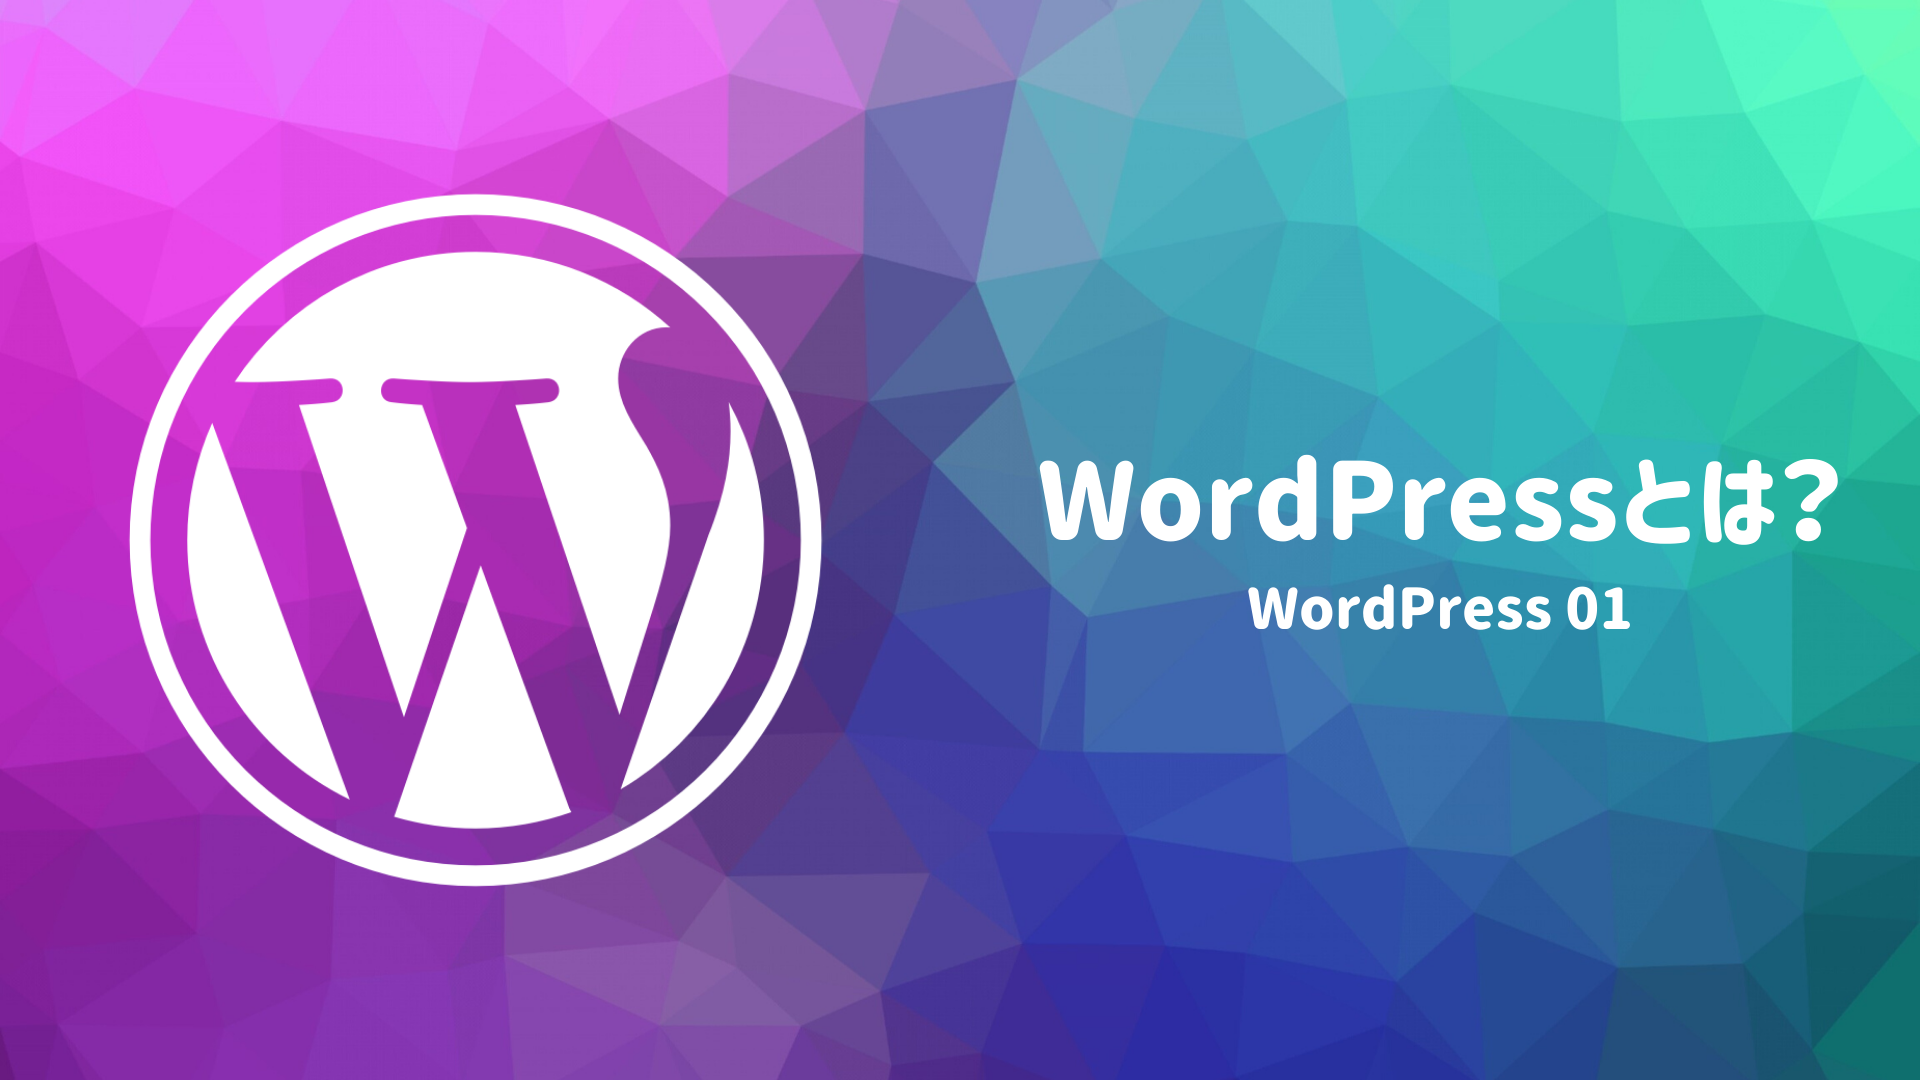 【WordPress 01】WordPressとは?